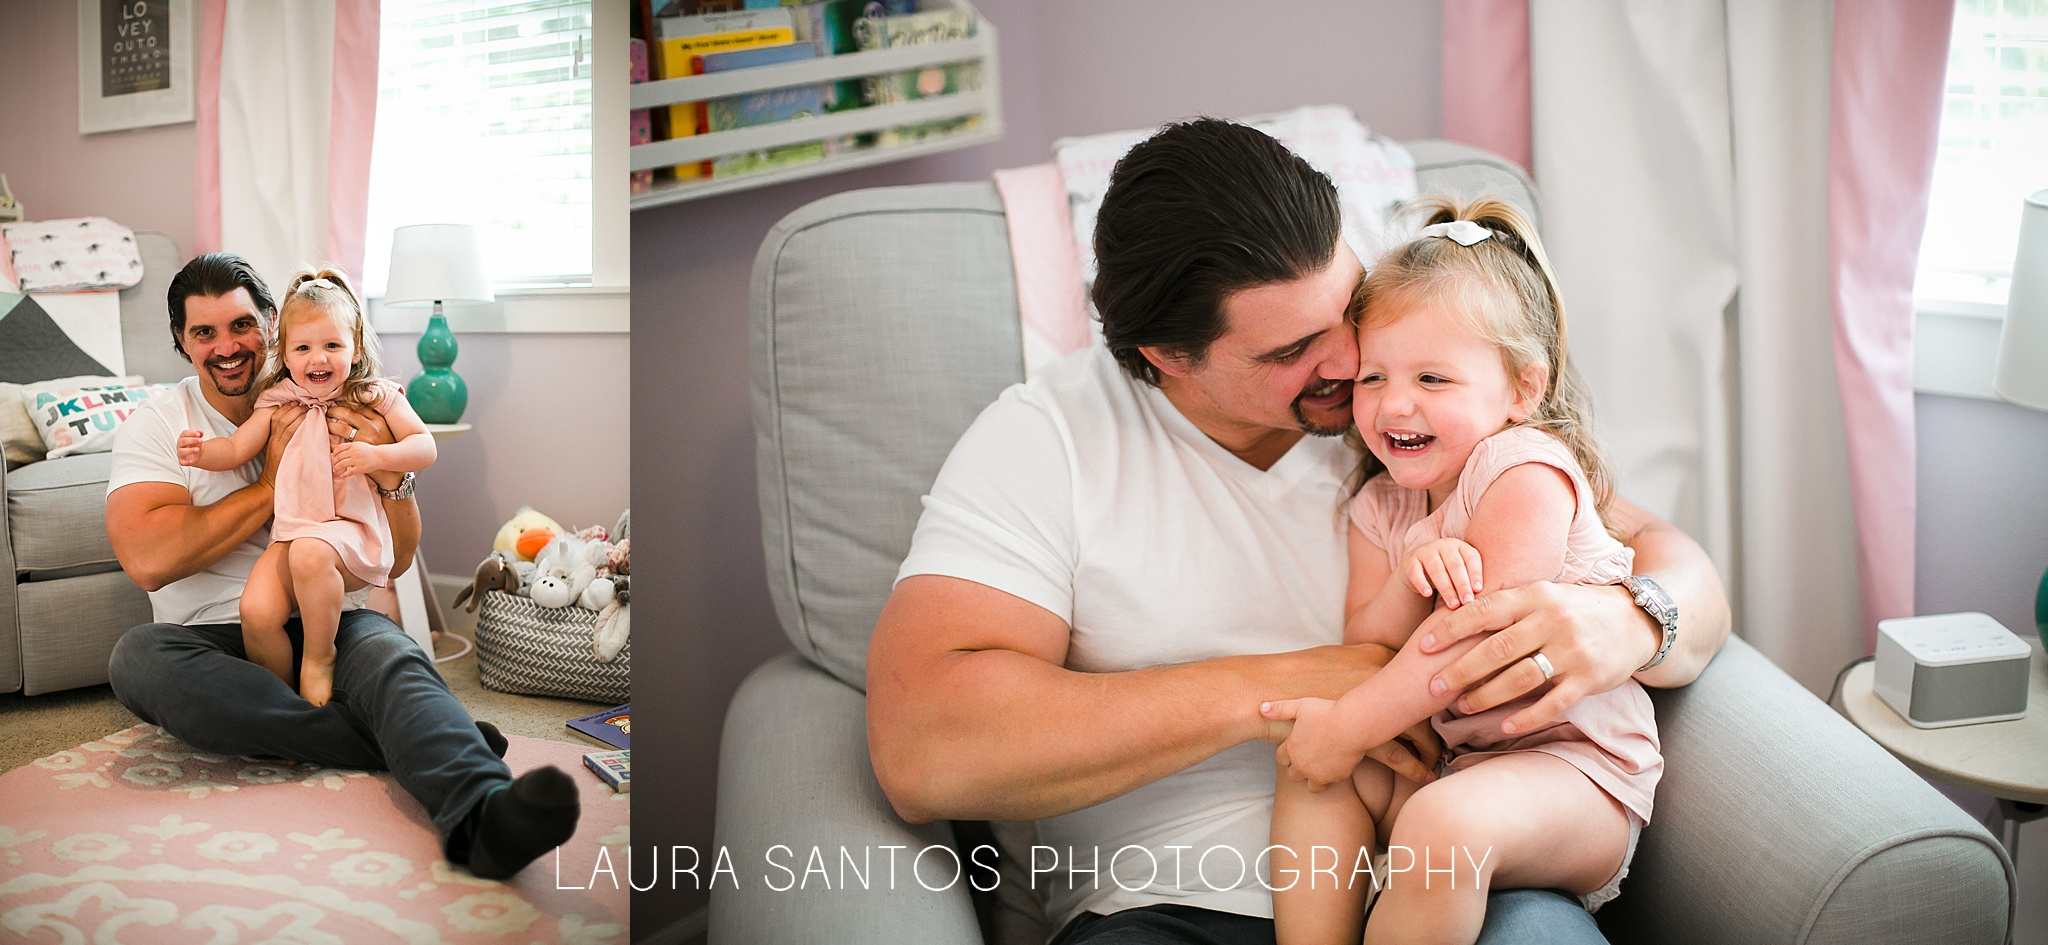 Laura Santos Photography Portland Oregon Family Photographer_1098.jpg